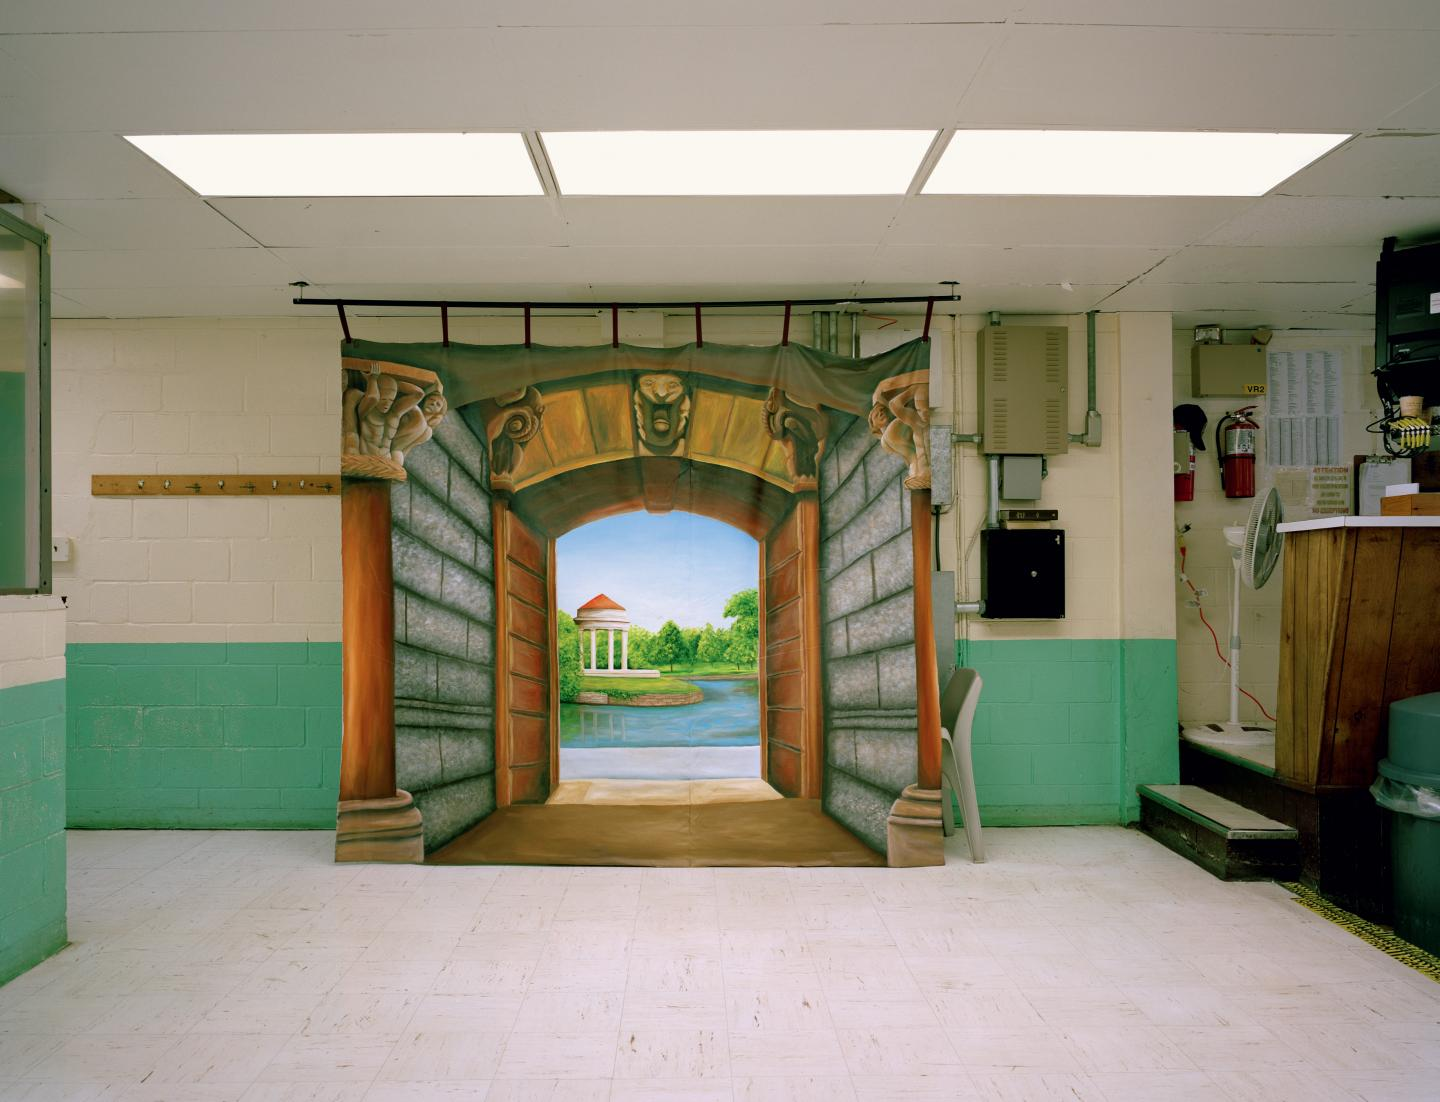 Painting of landscape with gates placed in sterile prison environment